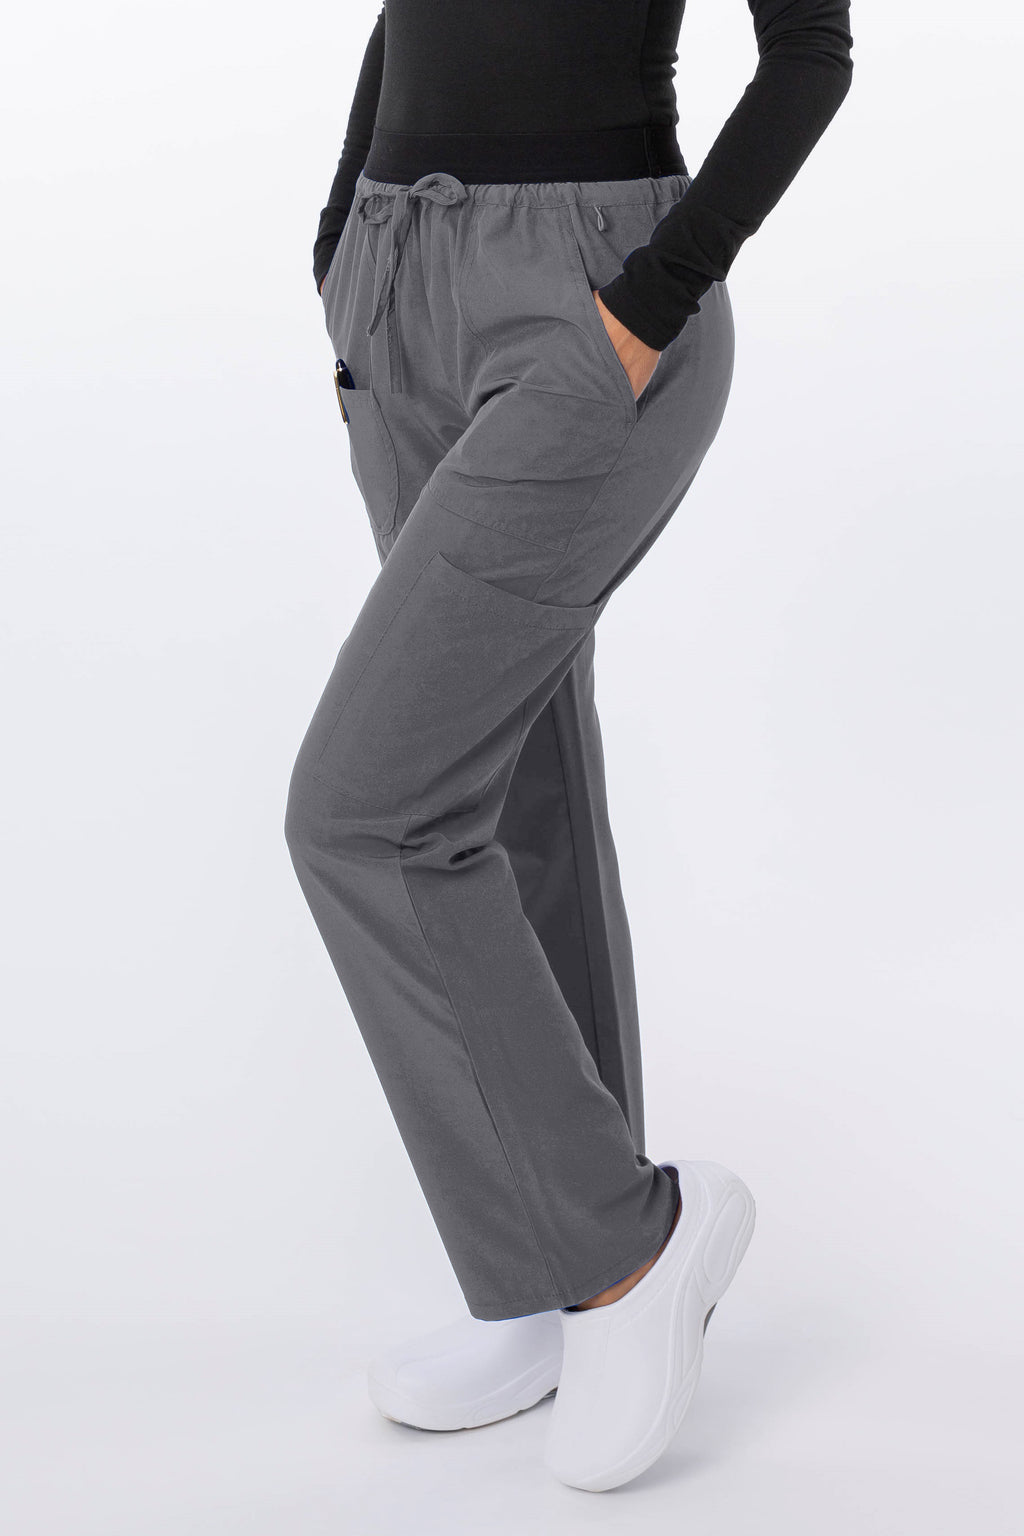 18-1040 Zinnia Scrub Pant By Greentown - Scrub Nation Canada